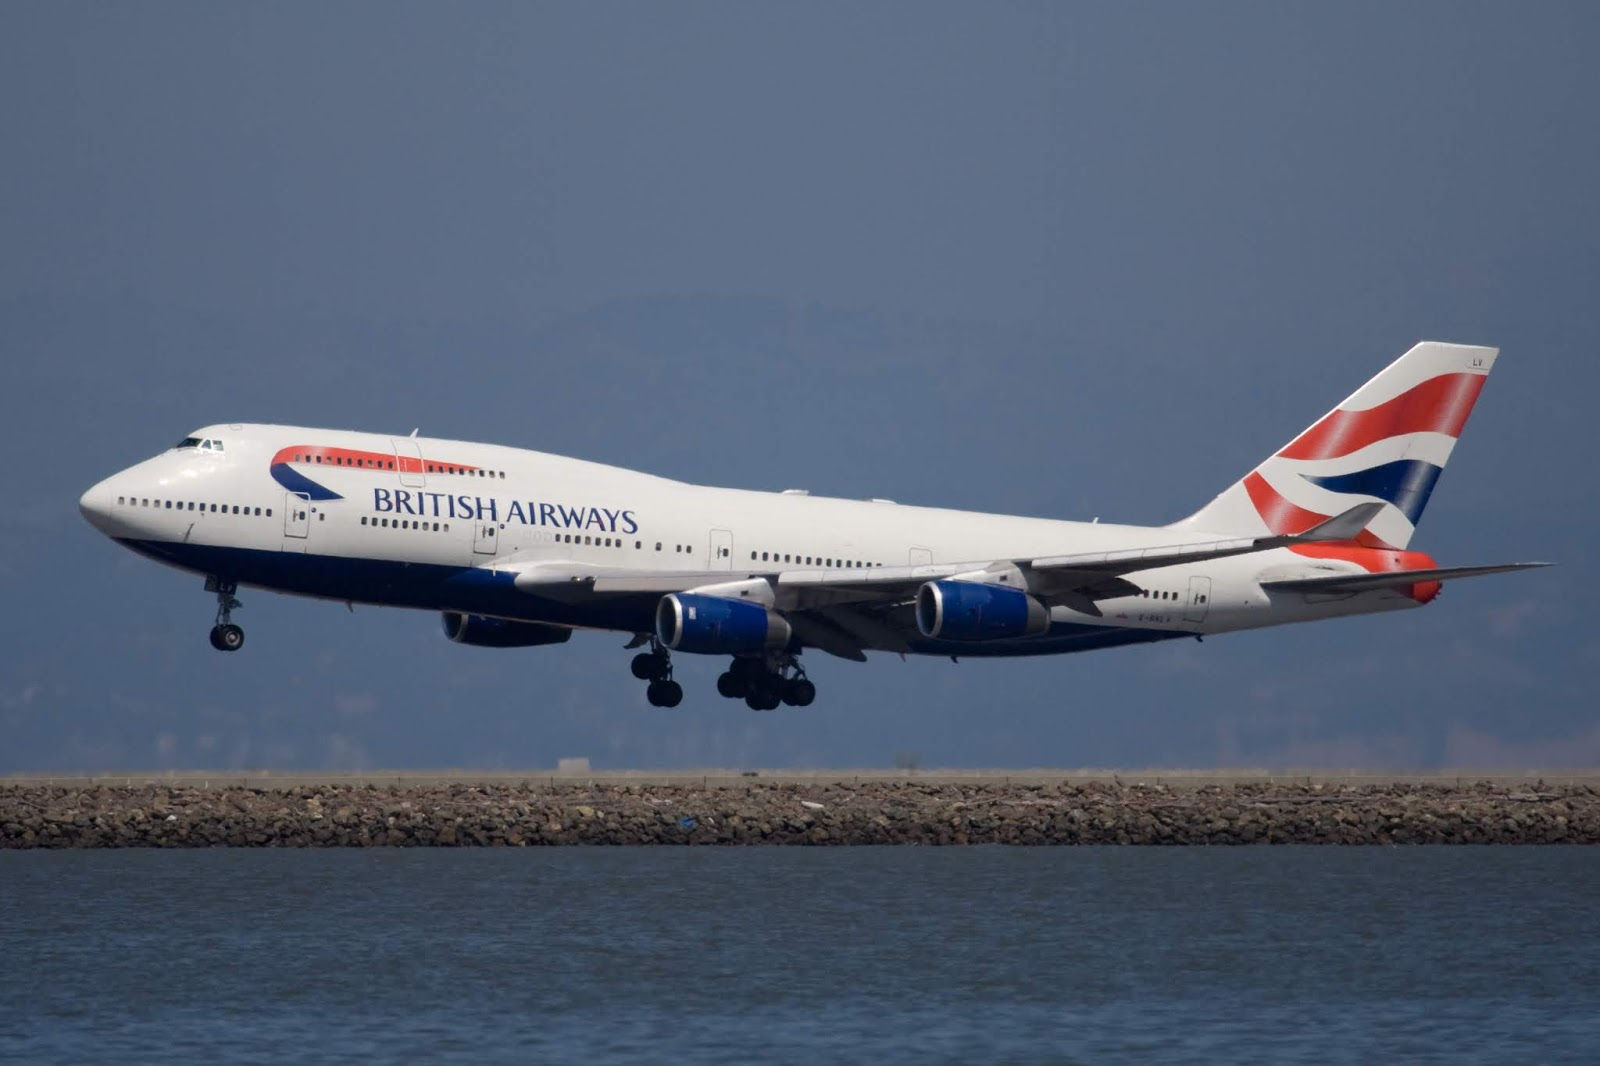 British Airways cancels most flights for two days due to